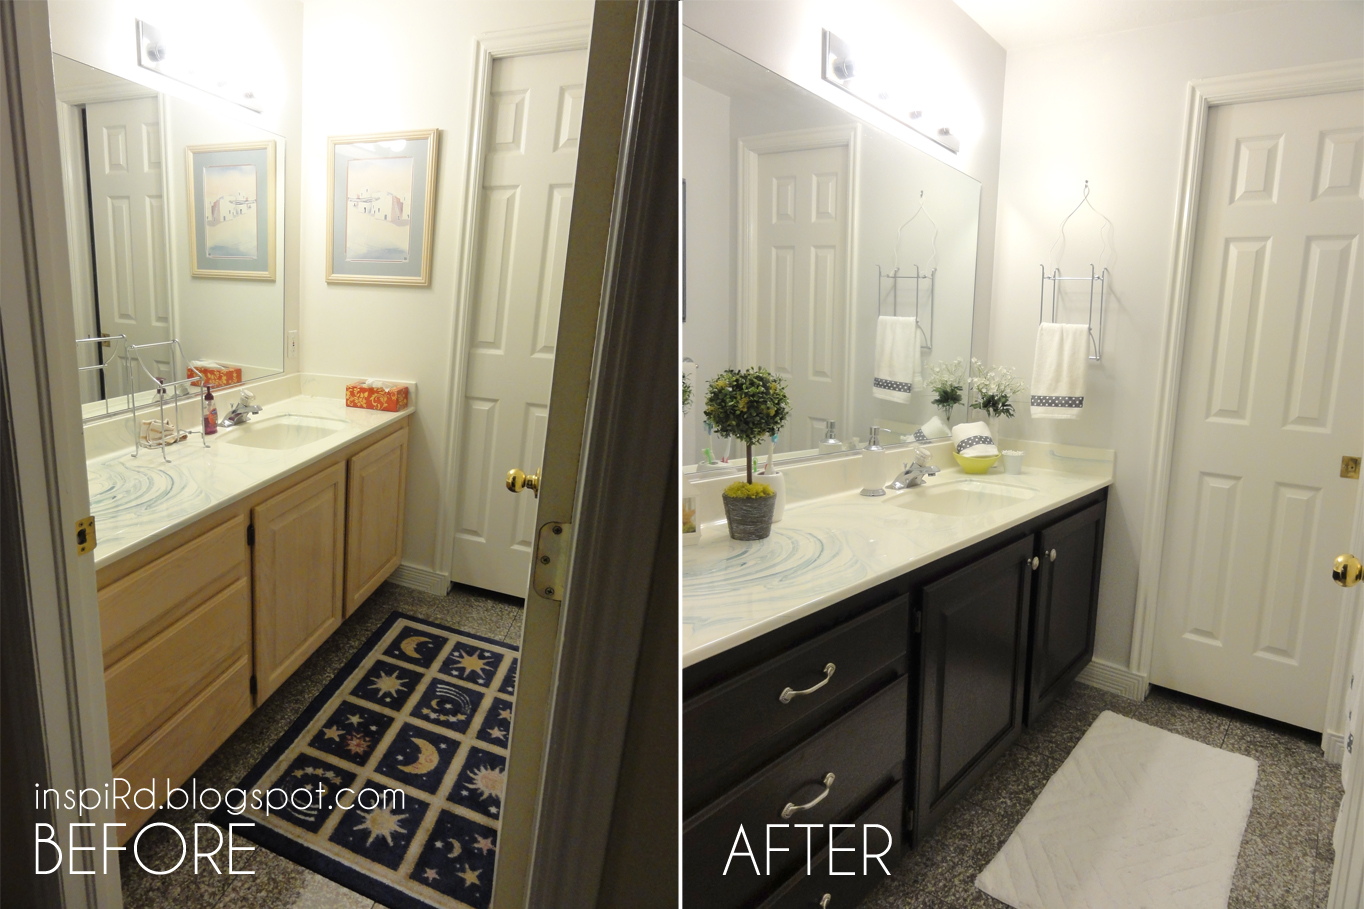 inspiRd: Staining Bathroom Cabinets - My First DIY Project!